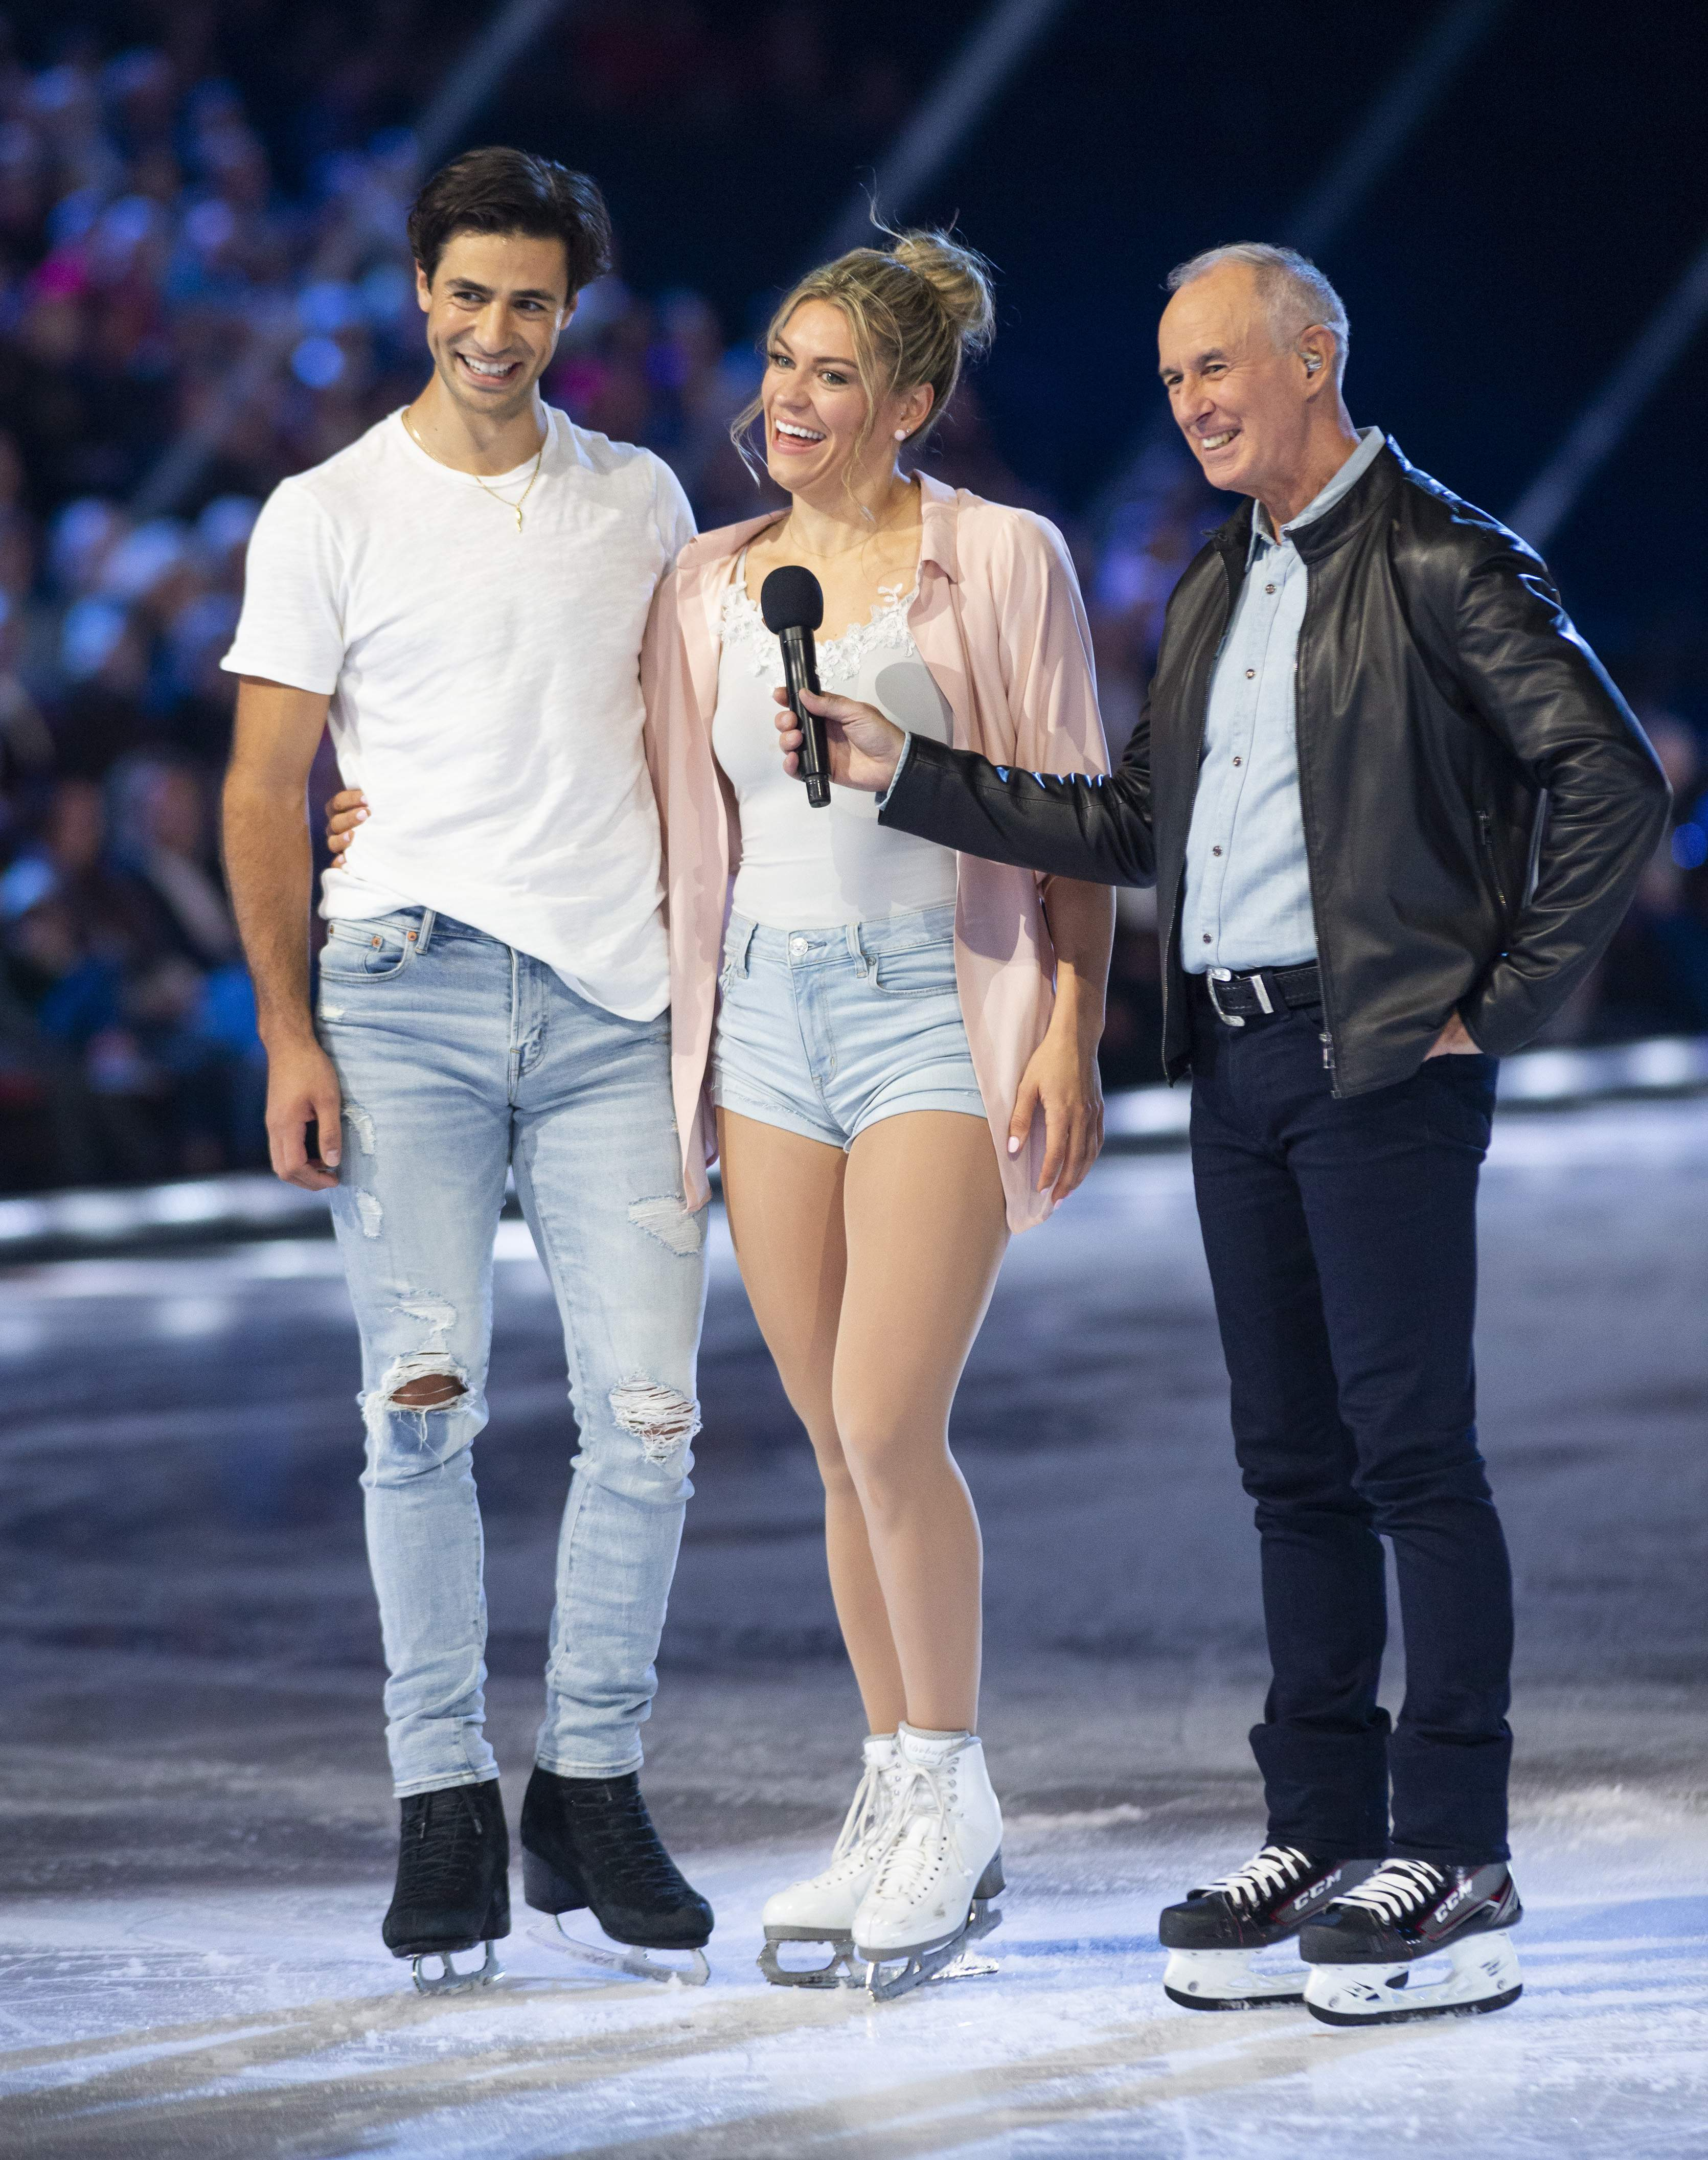 Natalie Spooner and Andrew Poje and Ron Maclean